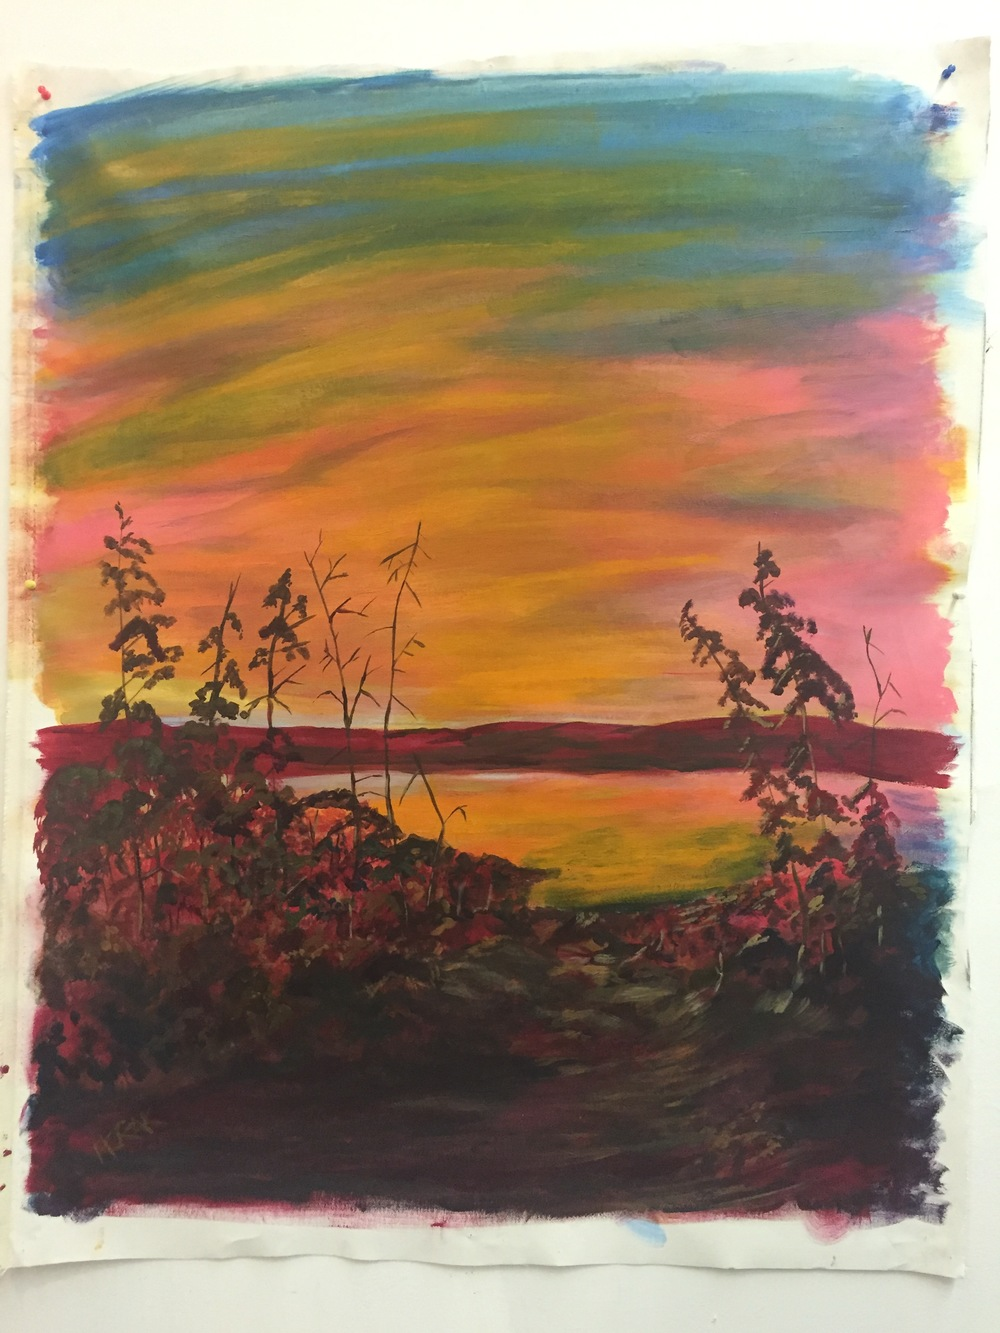 Sunset, P.E.I. - Acrylic on Canvass.  3'x5'